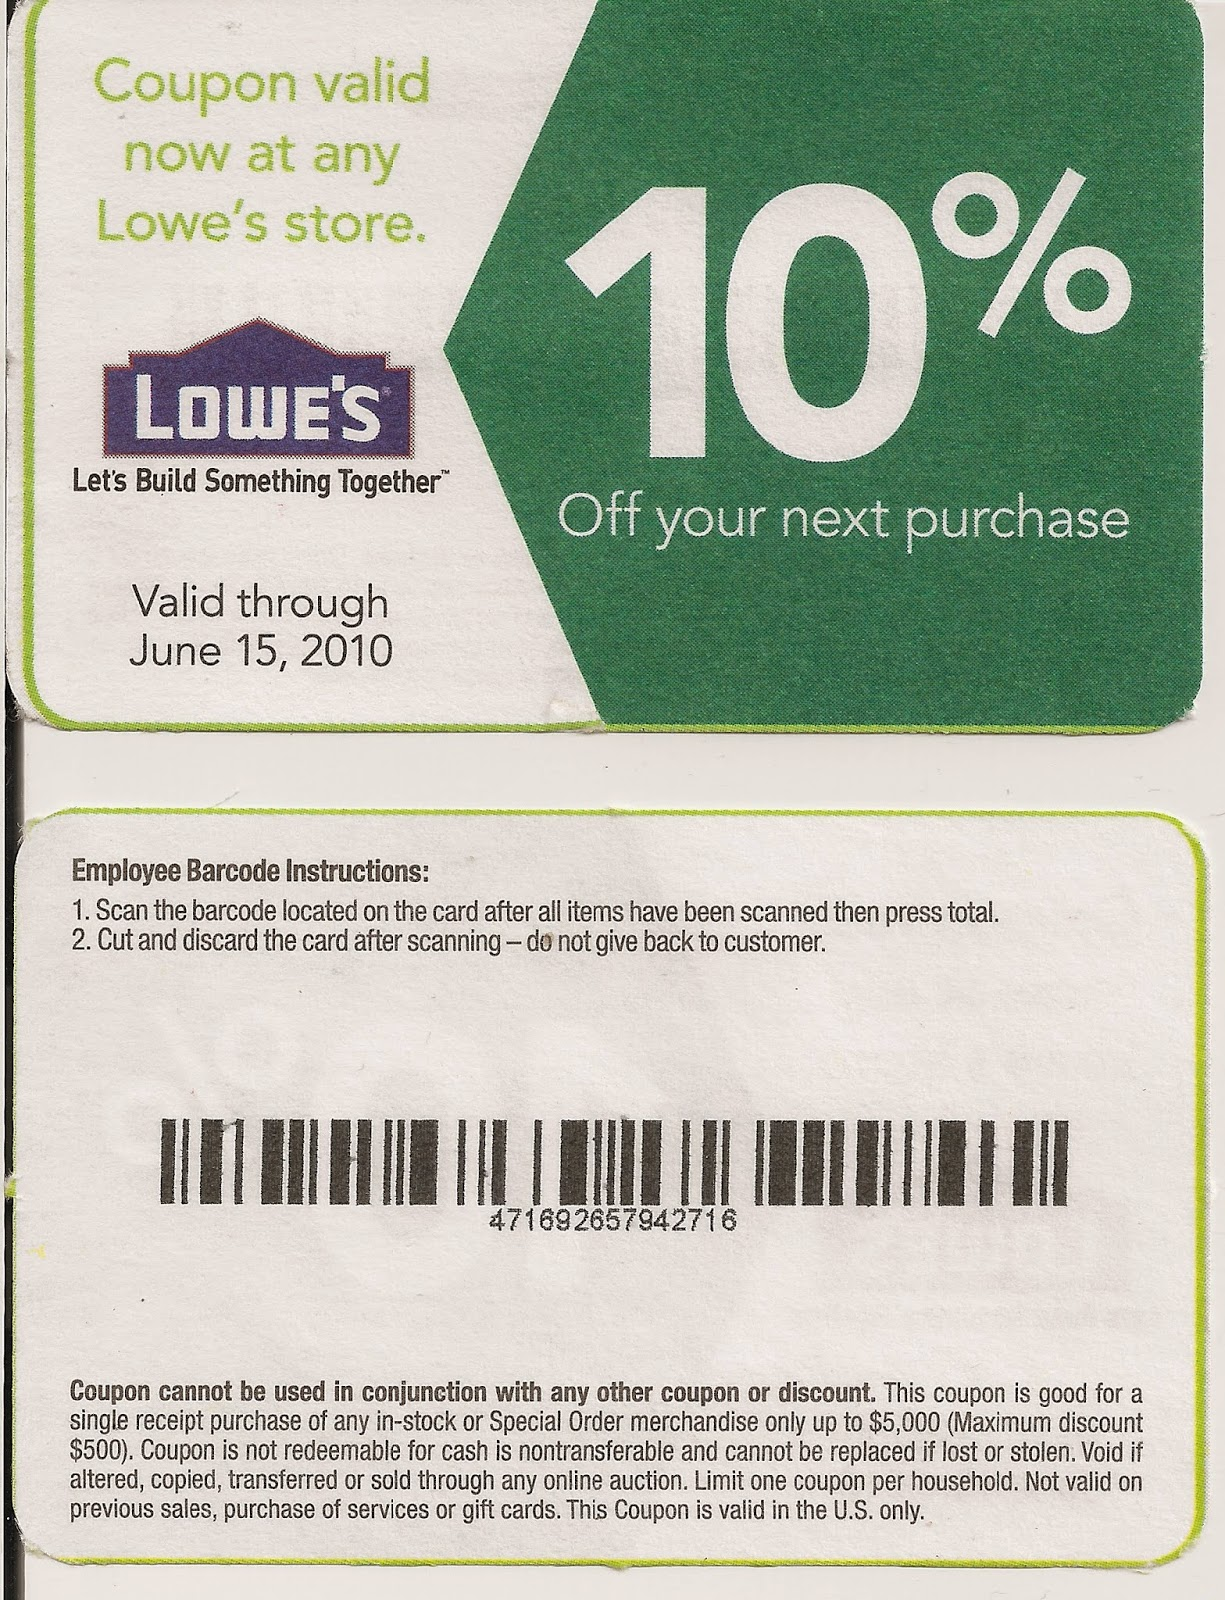 photo regarding Lowes 10% Printable Coupon known as Coupon code for lowes on the web - Southwest airways coupon